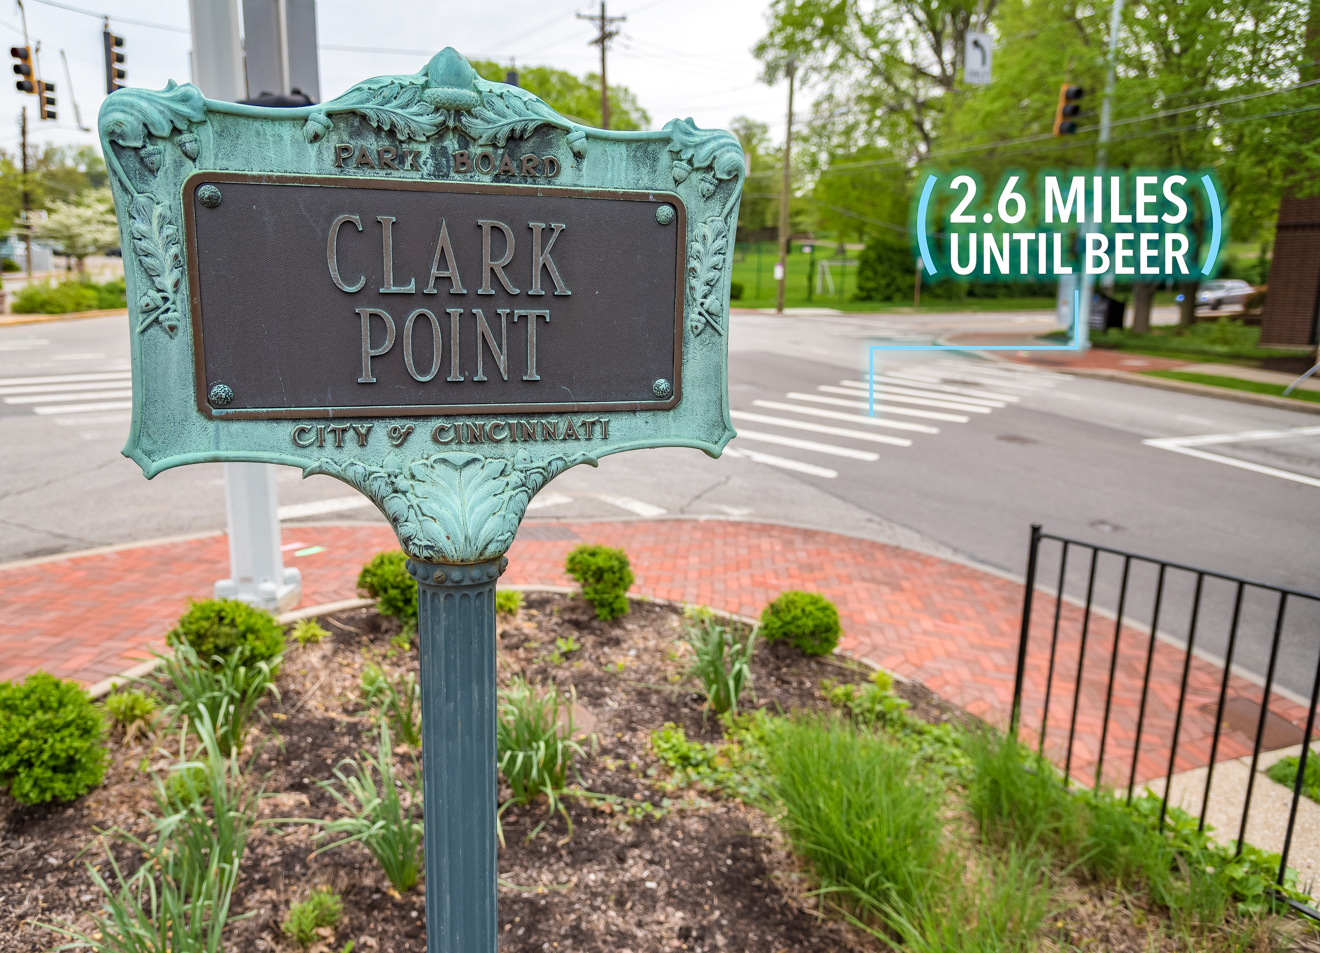 You'll come upon Clark Point, a tiny little triangular park at the corner of Madison Road, Torrence Parkway, and Grandin Road. Cross the street and stay on Madison Road. / Image: Phil Armstrong, Cincinnati Refined // Published: 4.25.17